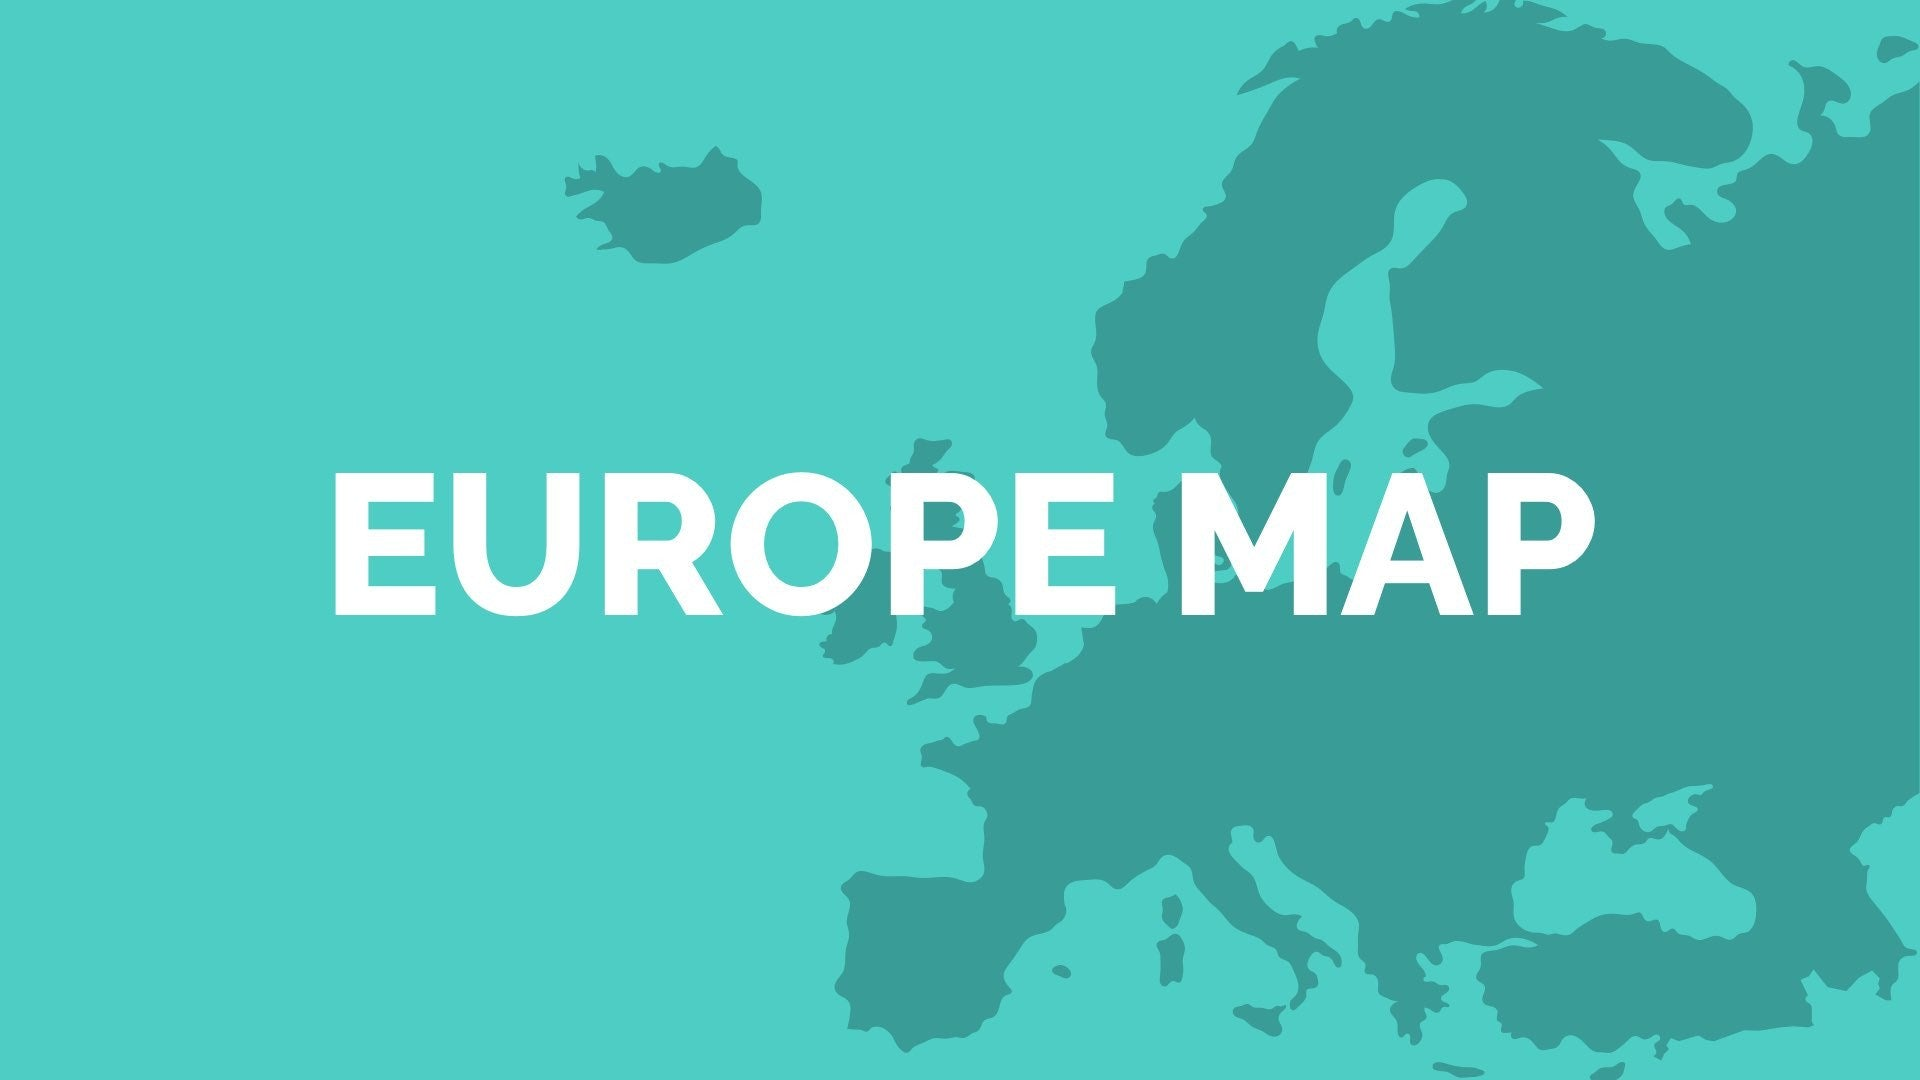 Europe Map for PowerPoint & Keynote - Presentation Shop